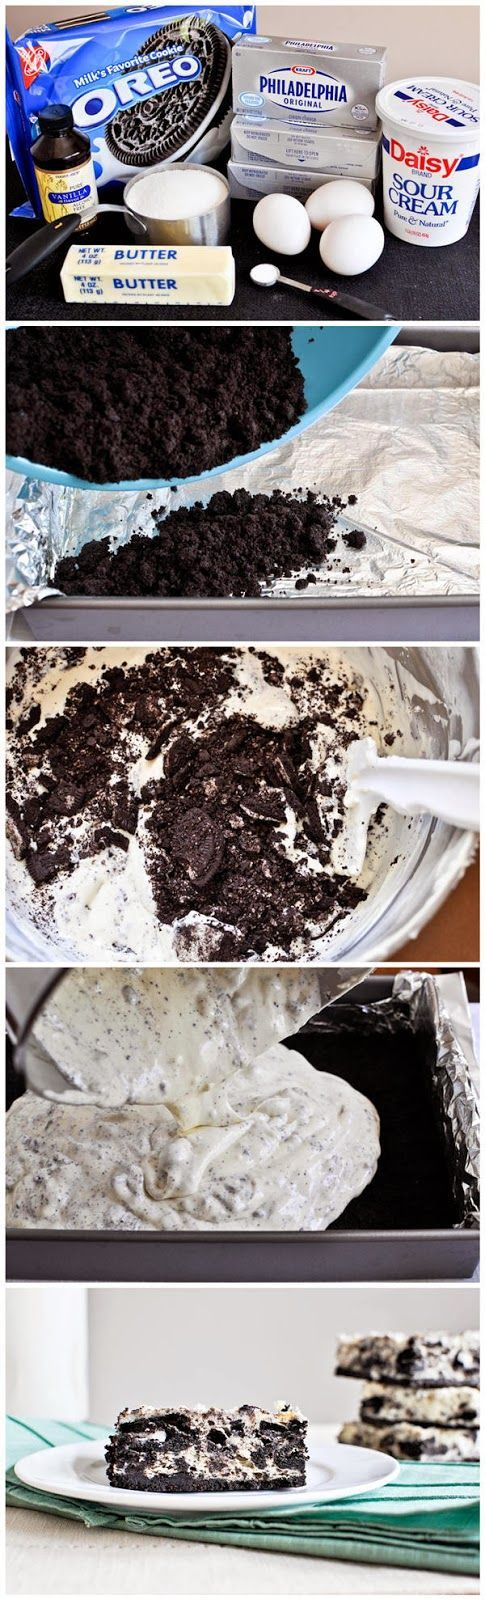 Cookies and Cream Cheesecake Bars. | Yummy!! | Pinterest